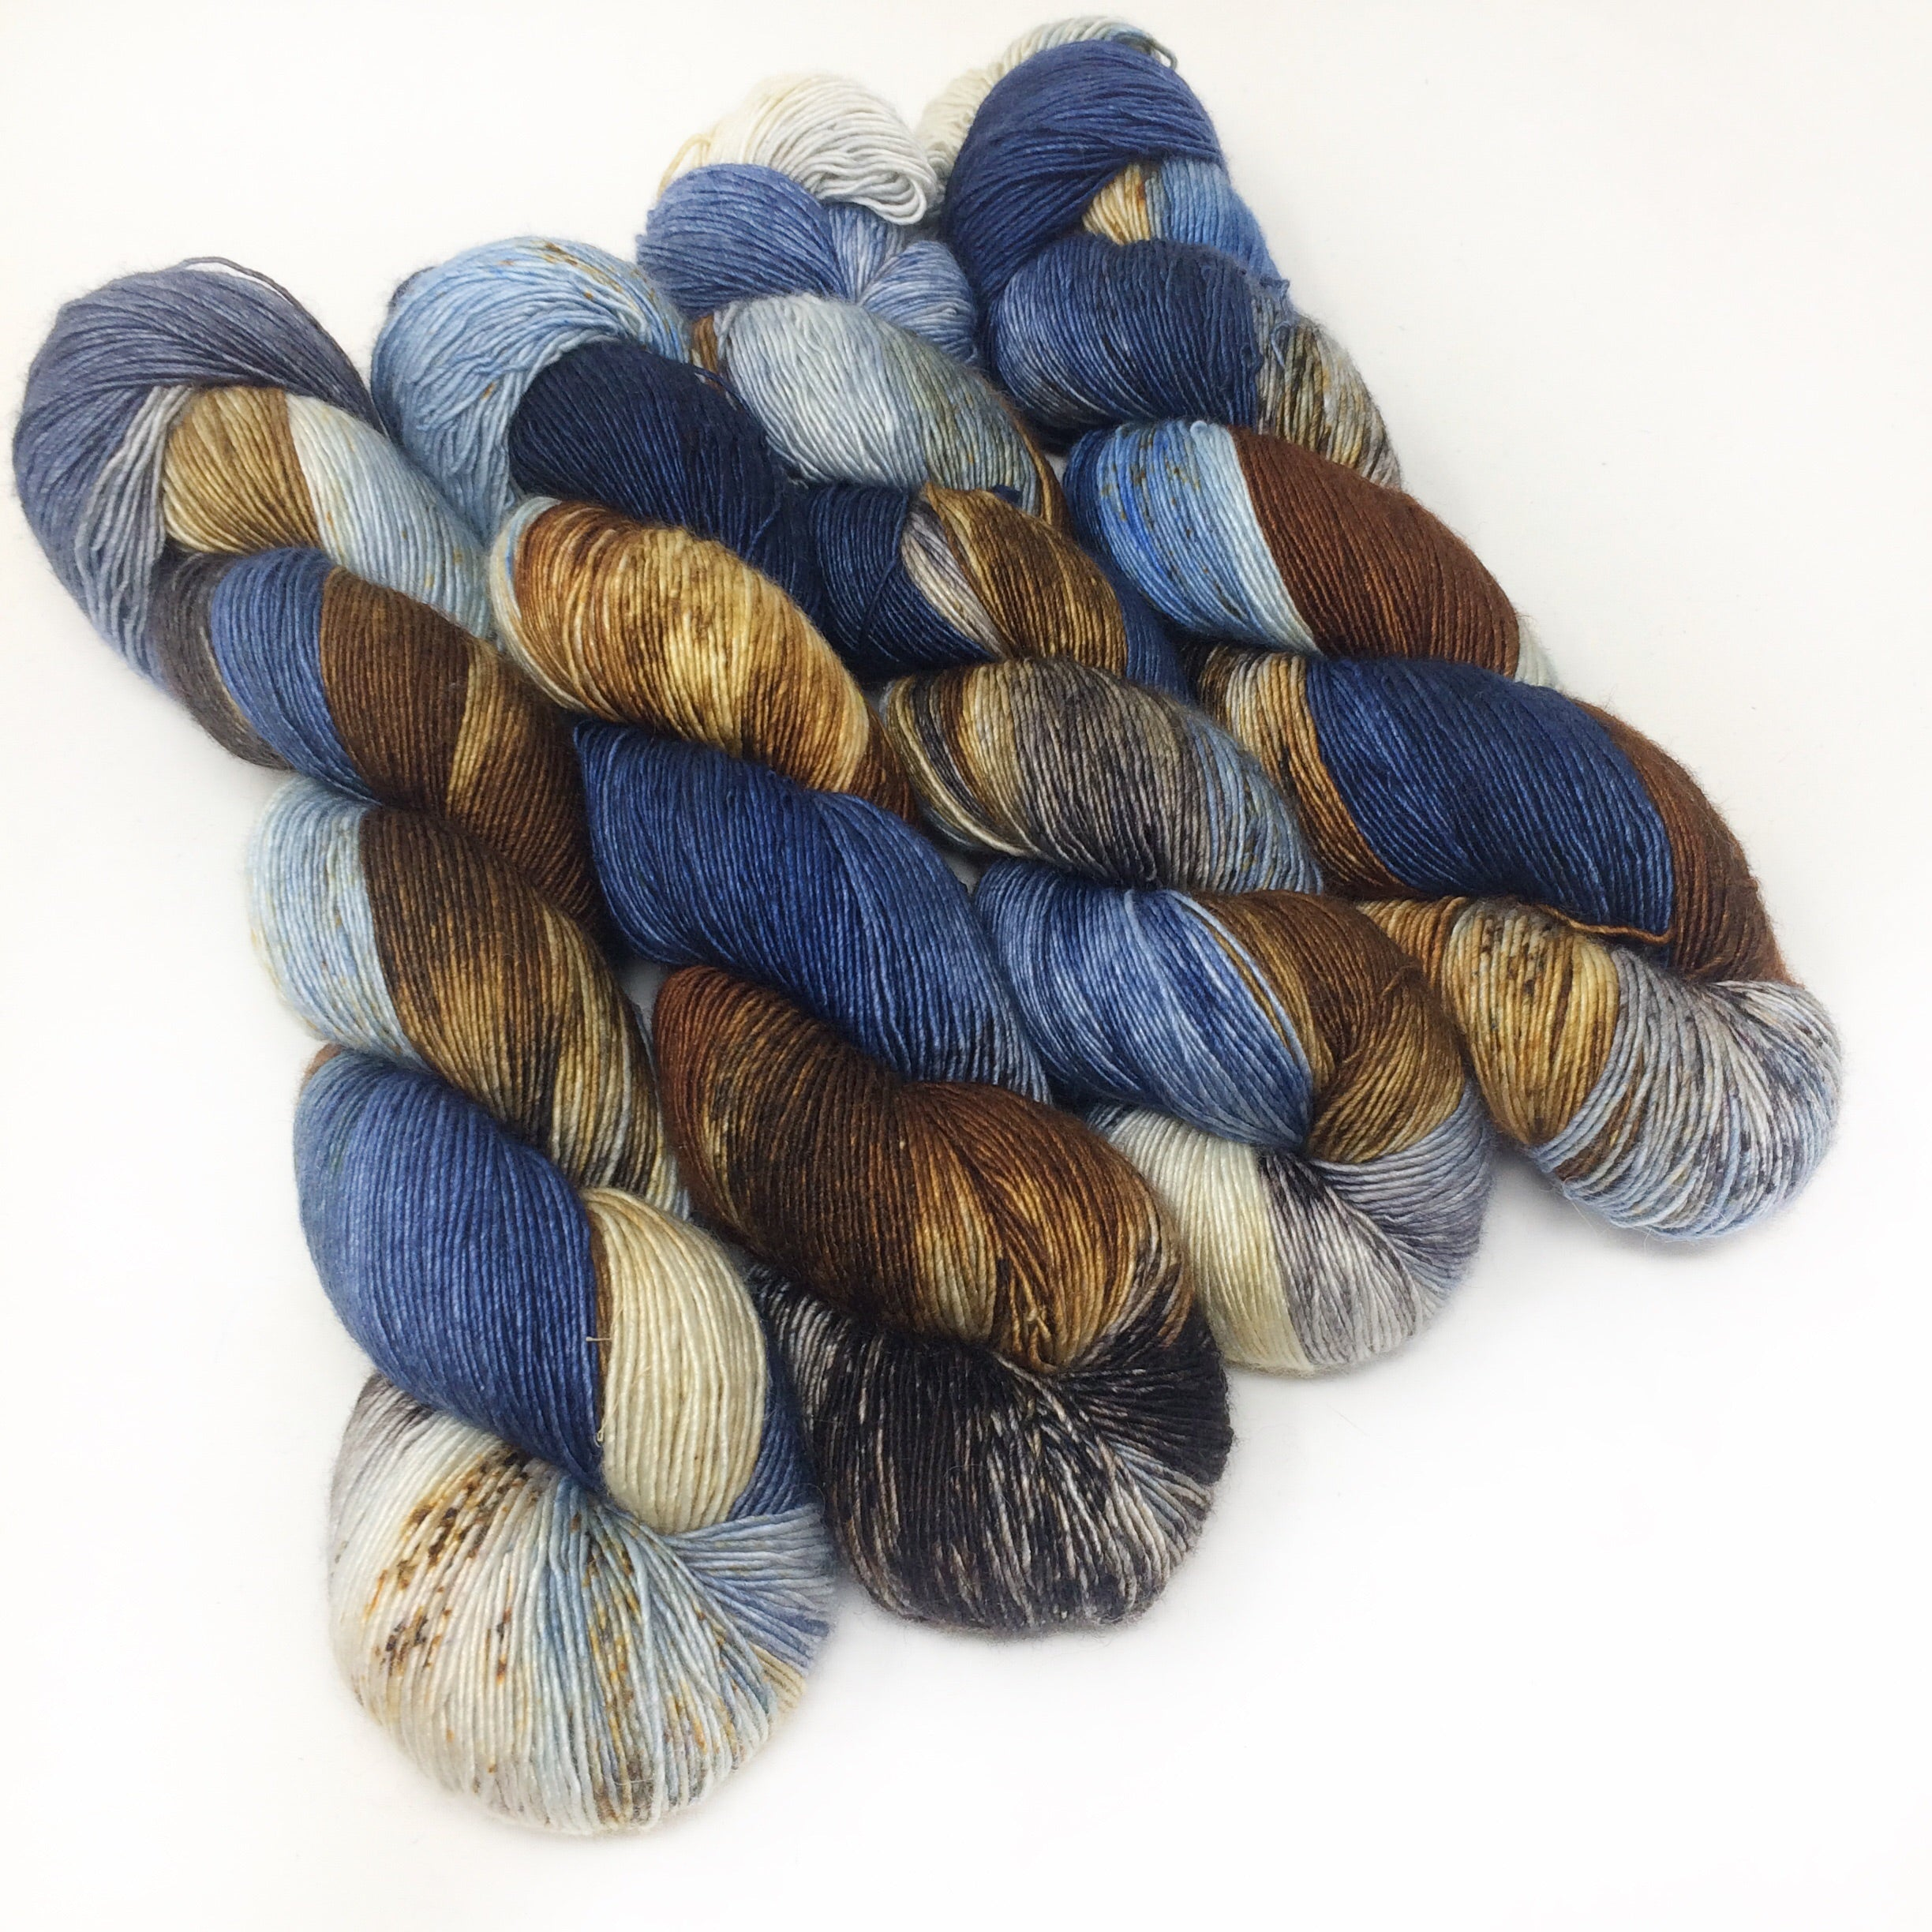 Lycopanthy - 70/30 merino silk single ply